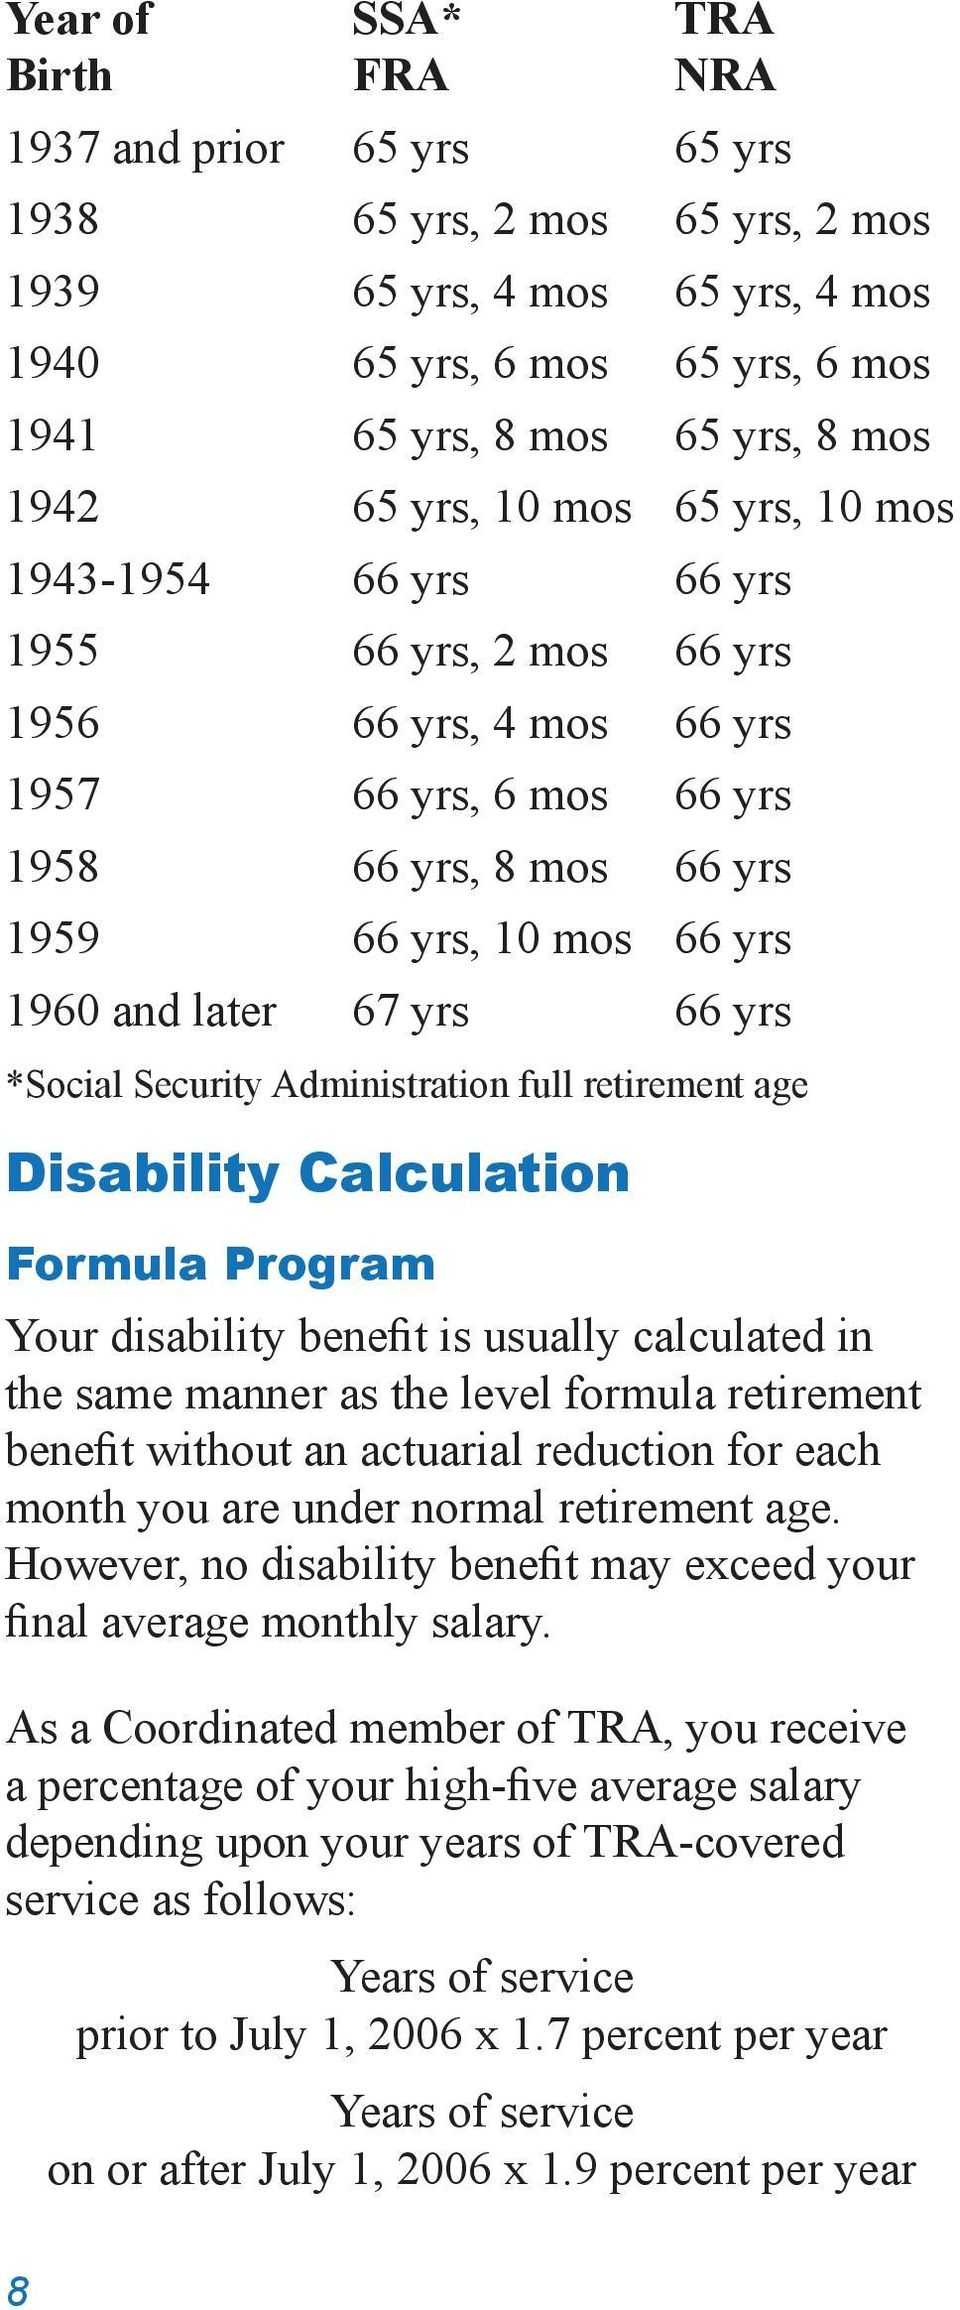 yrs 66 yrs *Social Security Administration full retirement age Disability Calculation Formula Program Your disability benefit is usually calculated in the same manner as the level formula retirement